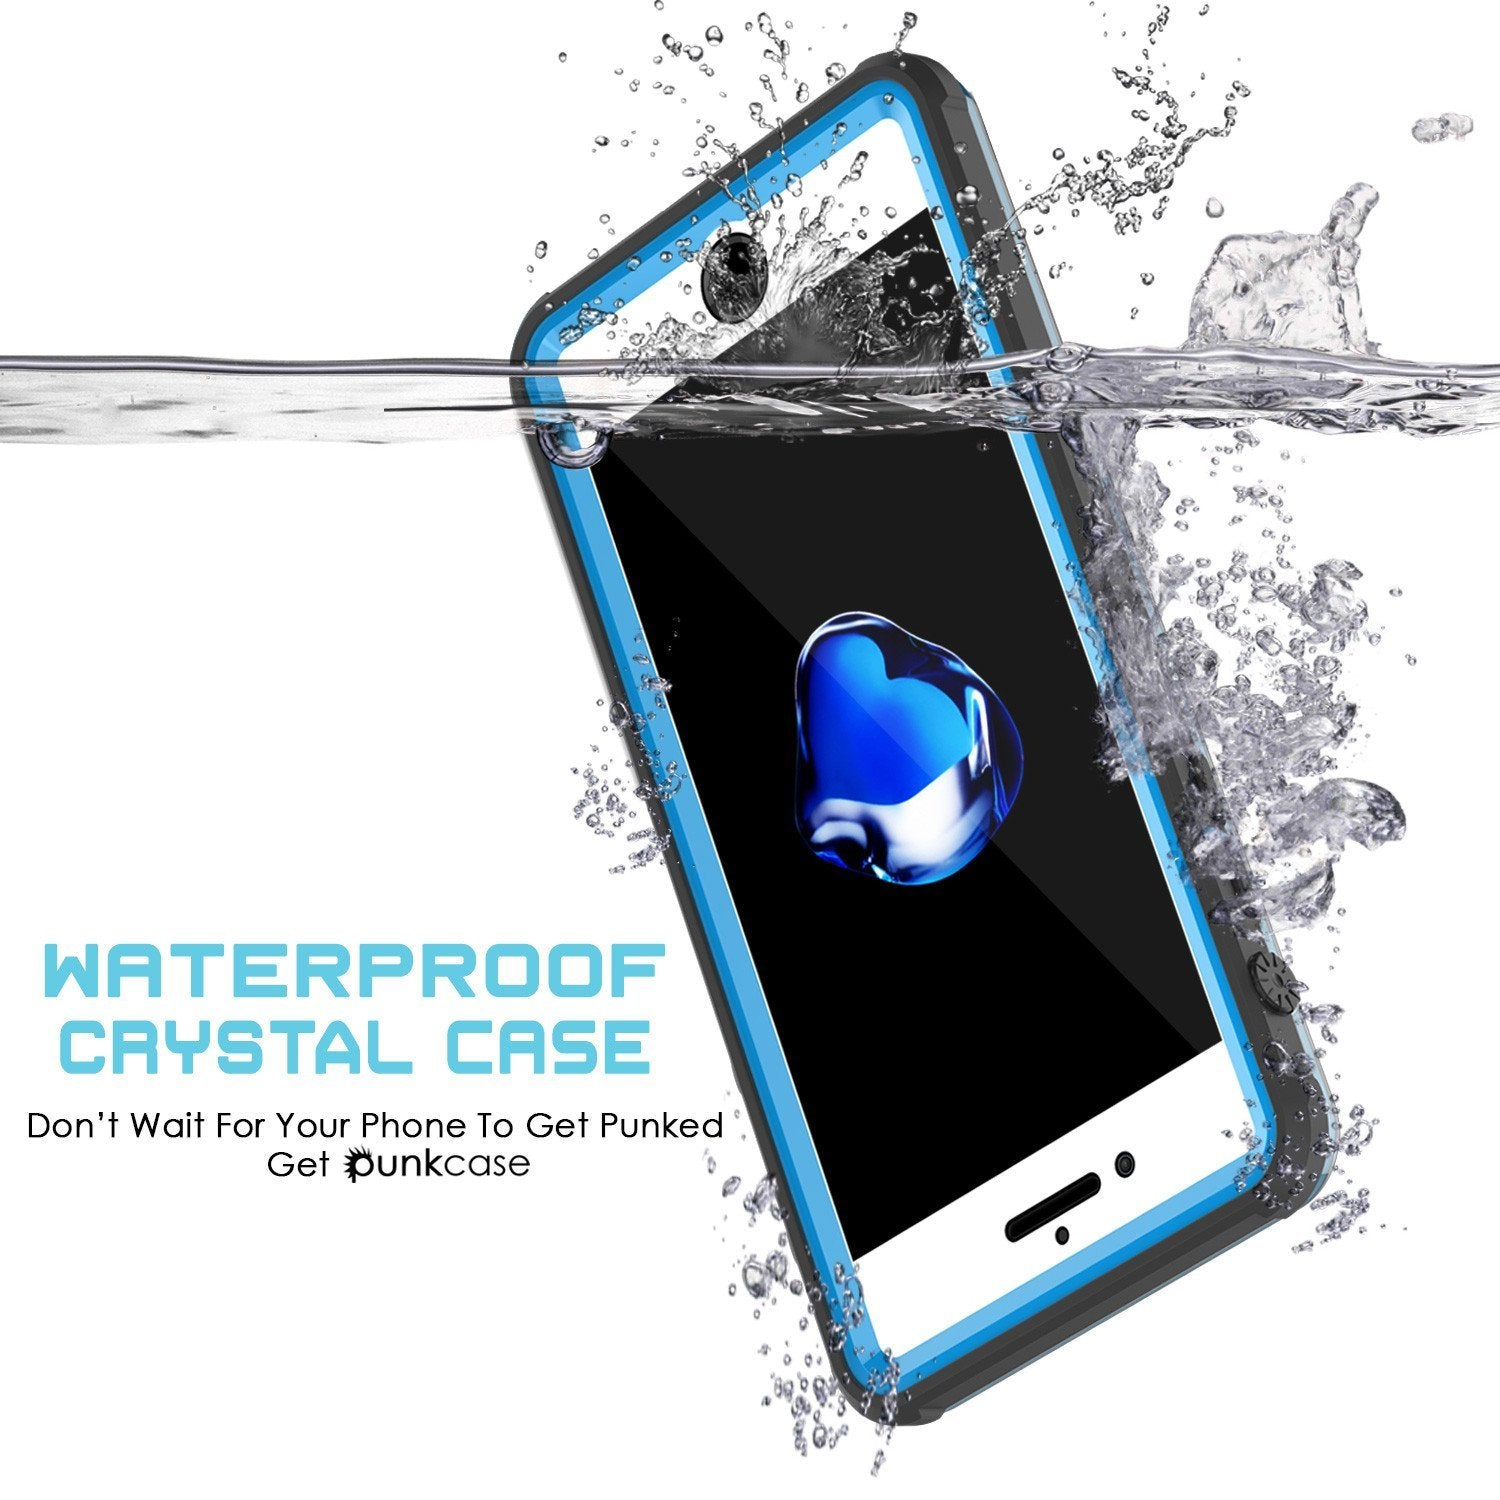 iPhone 8+ Plus Waterproof Case, PUNKcase CRYSTAL Light Blue  W/ Attached Screen Protector  | Warranty - PunkCase NZ